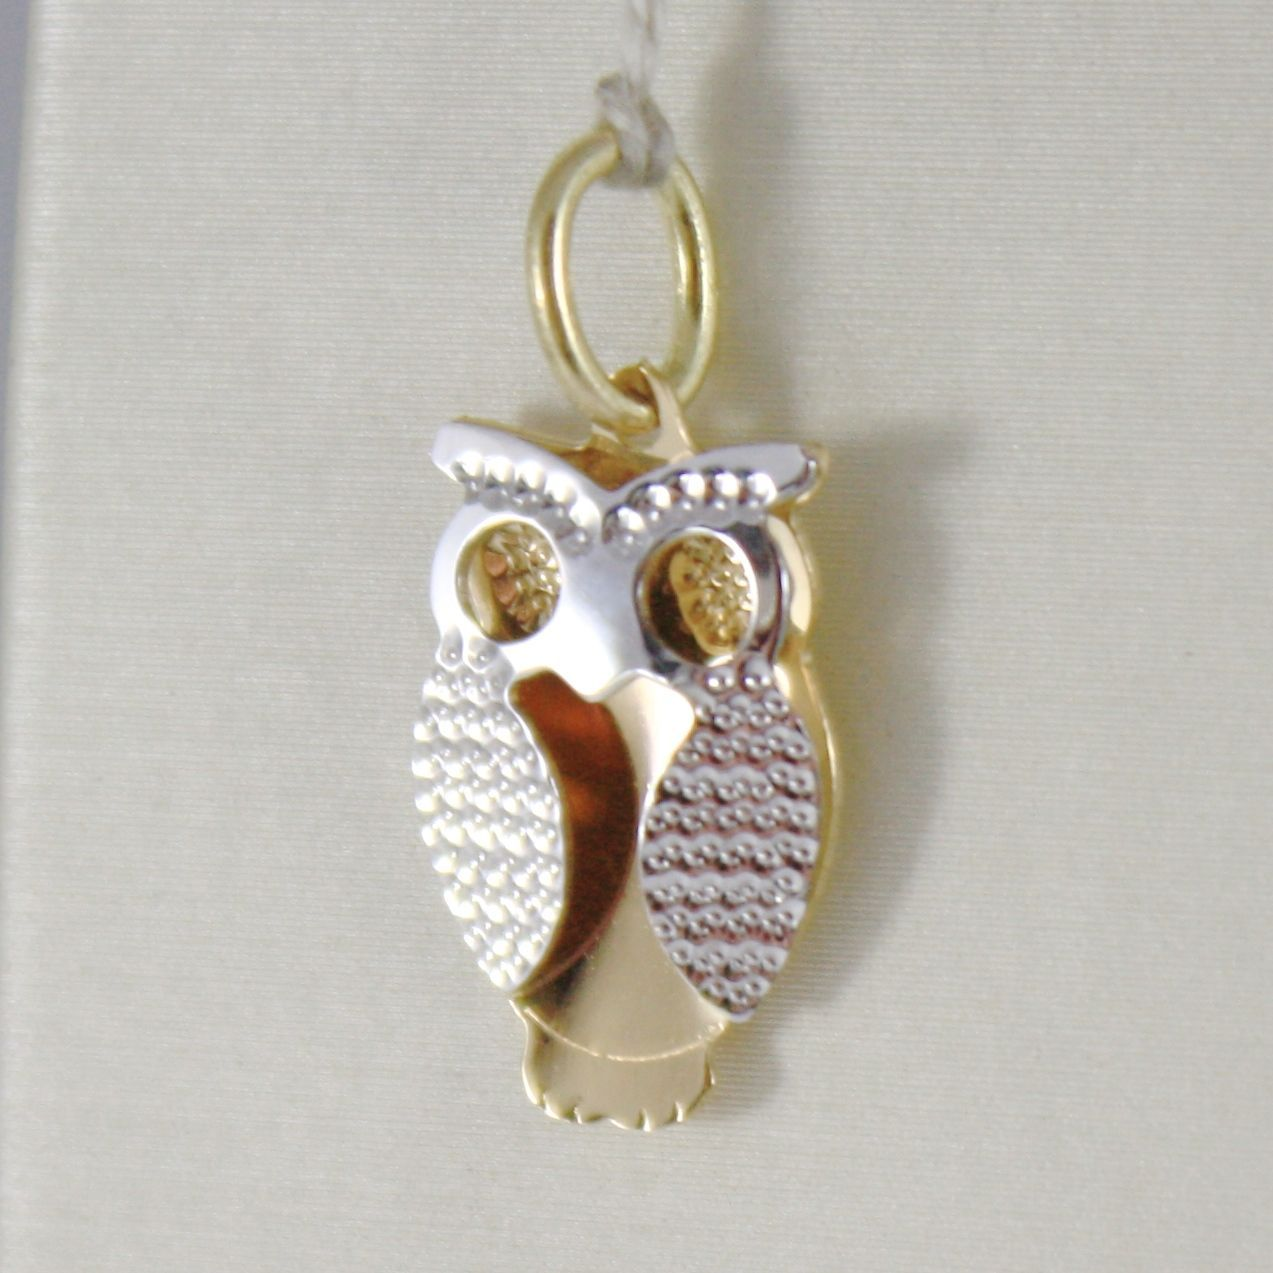 18K YELLOW & WHITE GOLD PENDANT CHARM, LUCKY OWL, FINELY WORKED, MADE IN ITALY